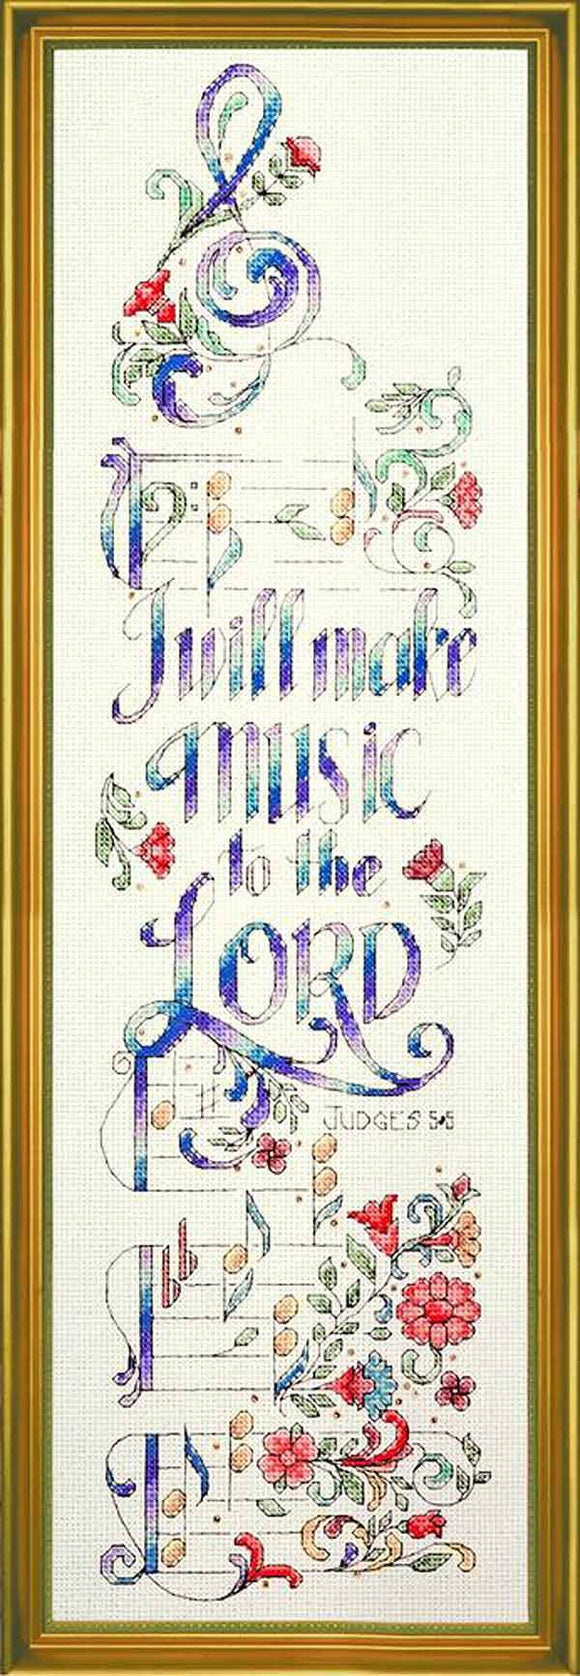 I Will Make Music Cross Stitch Kit by Design Works